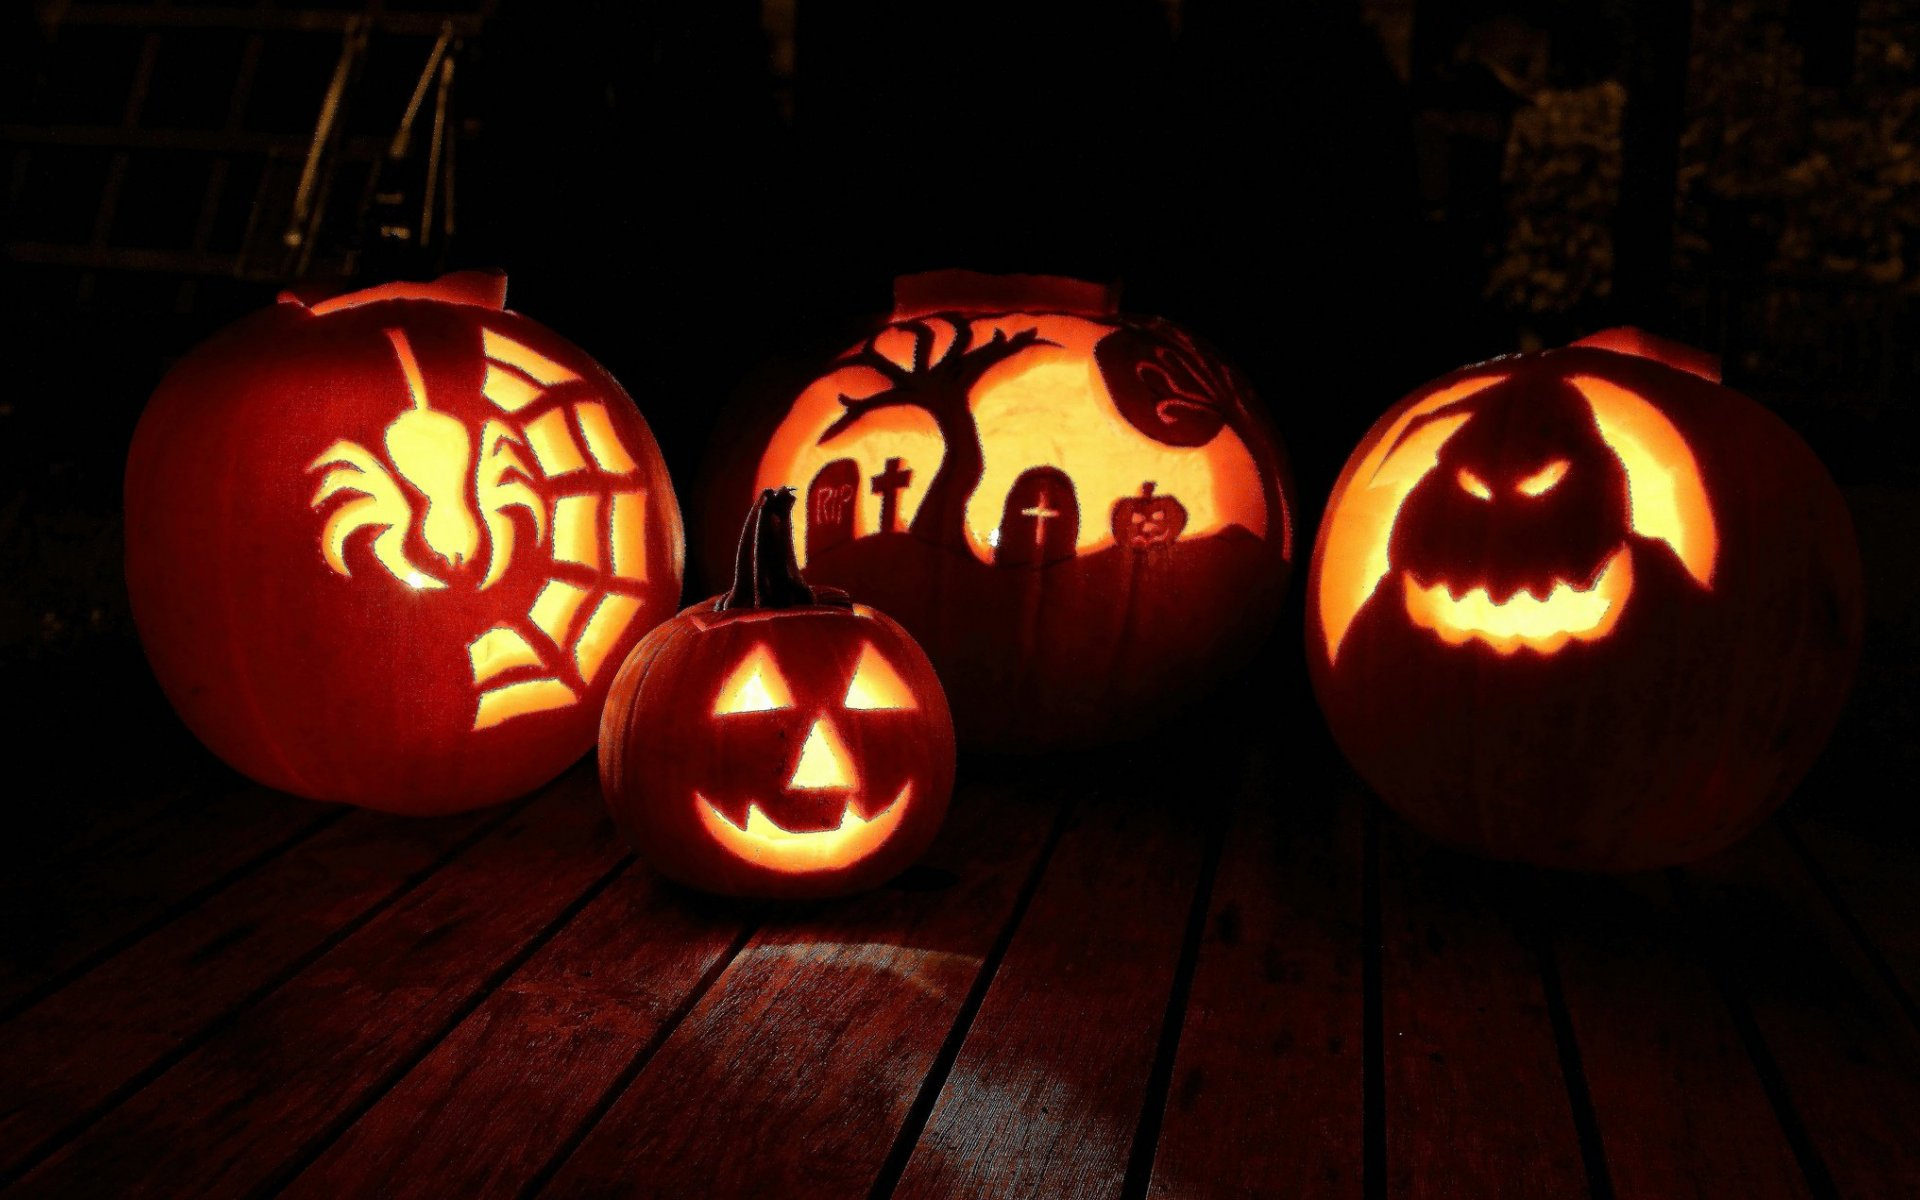 Desktop Halloween Pumpkin Backgrounds.